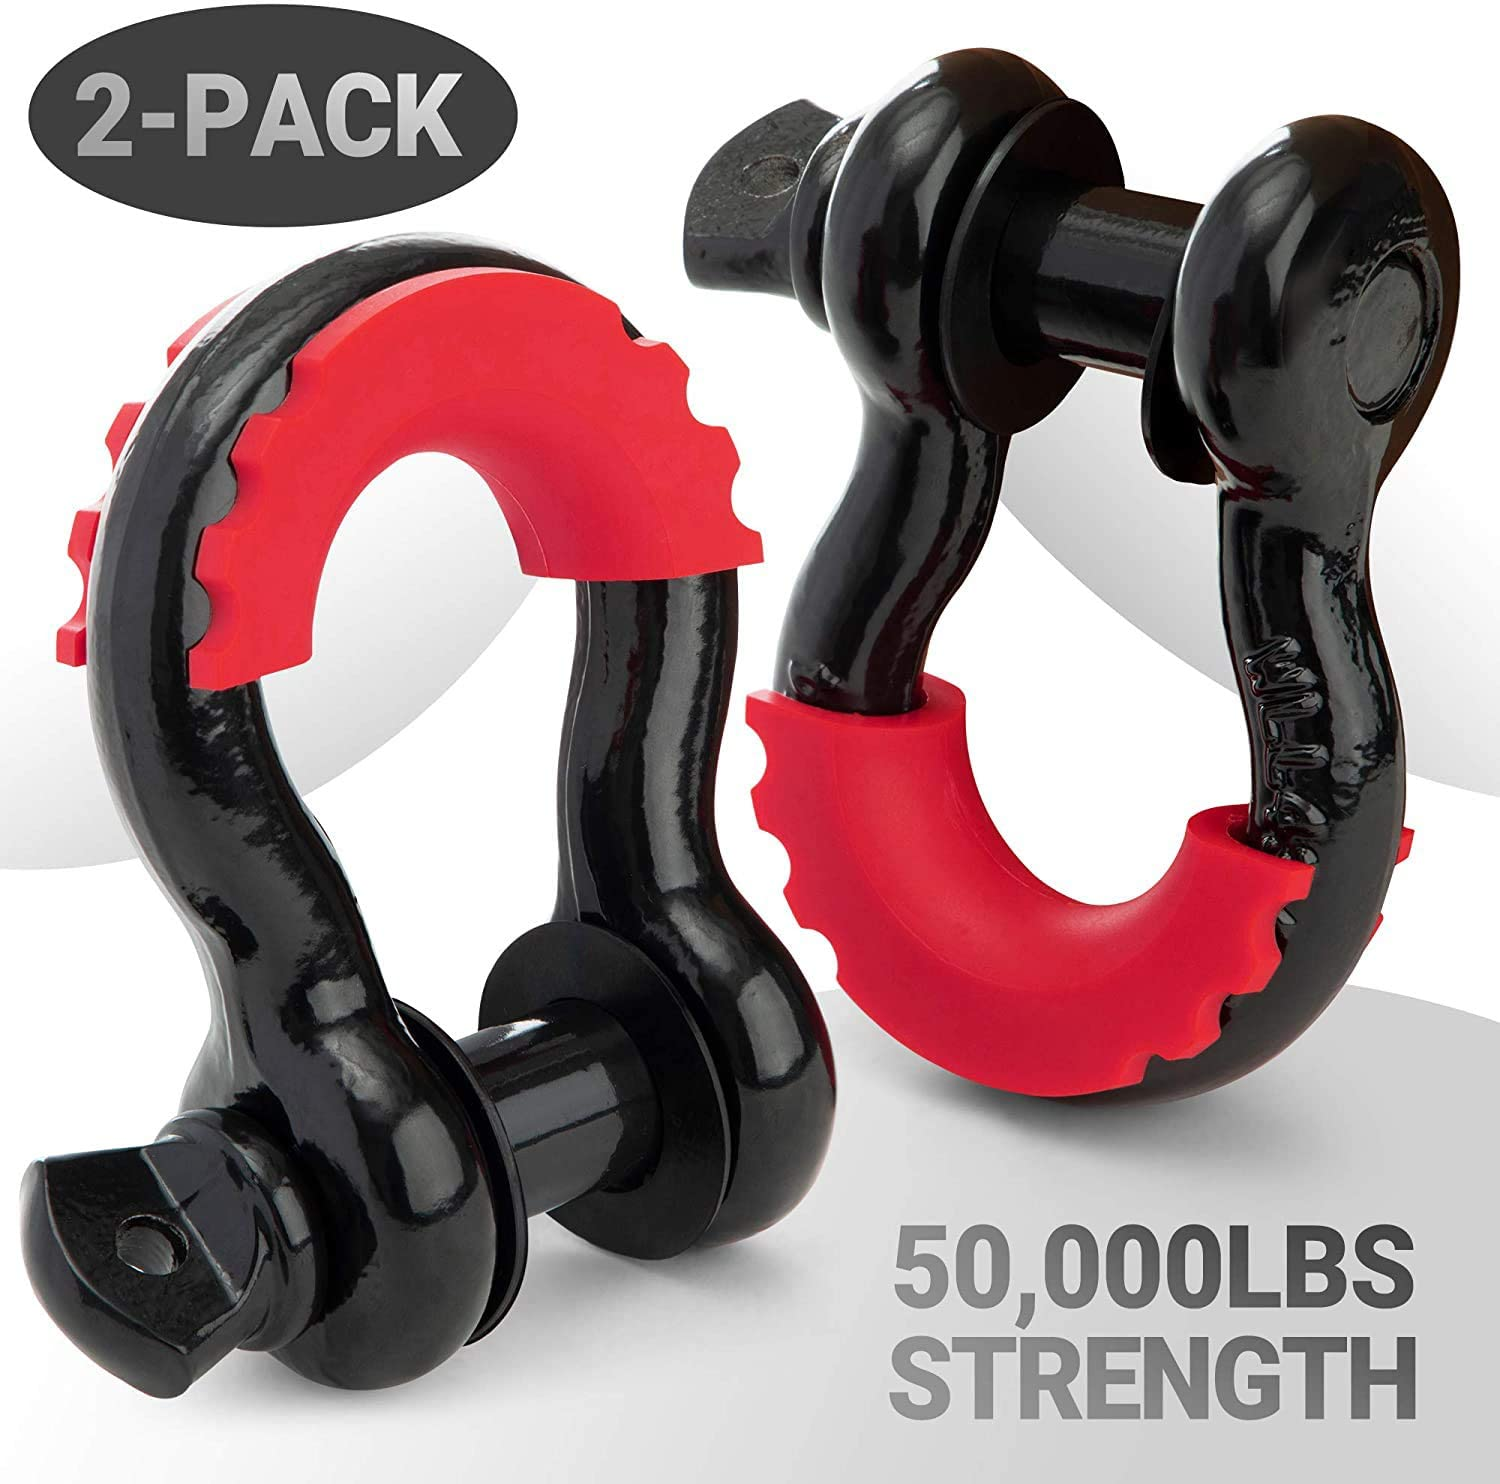 PROREADY D-Ring Shackles - Set of 2 Offroad Shackles with 7/8 in. Locking Pin - Offroad Shackles for Towing - Your Next Outdoor Camping Adventure Awaits